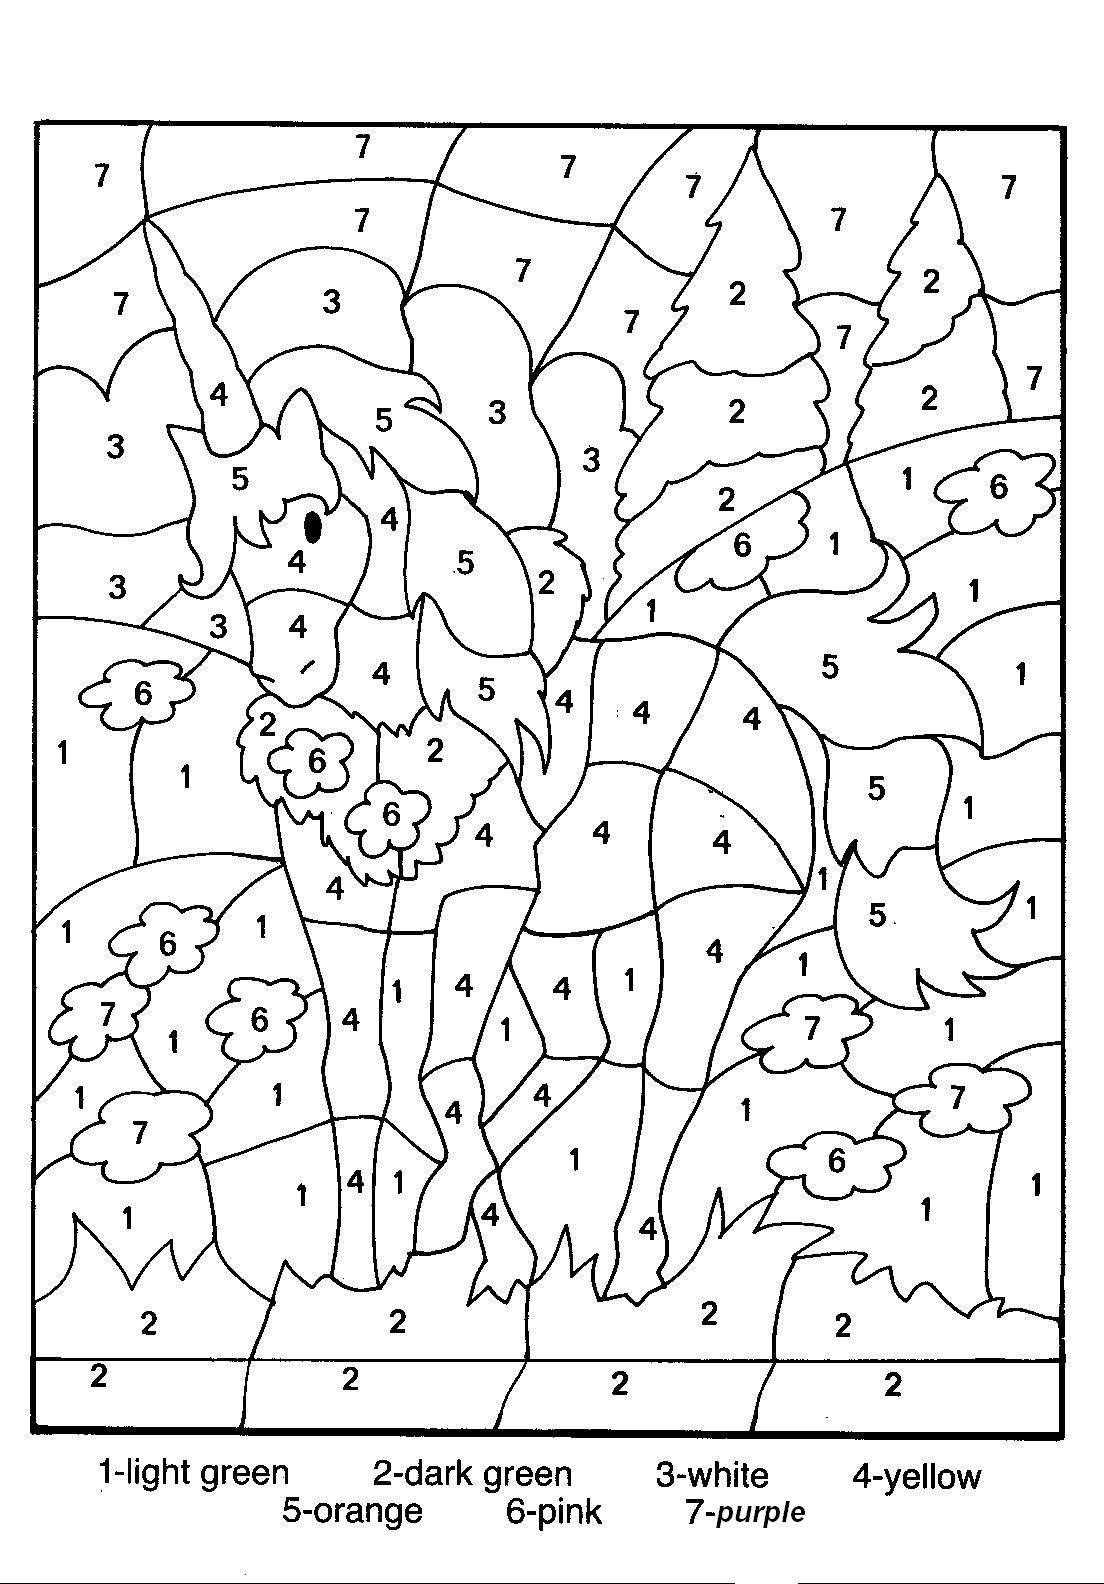 Free Printable Color by Number Coloring Pages | color by number ...